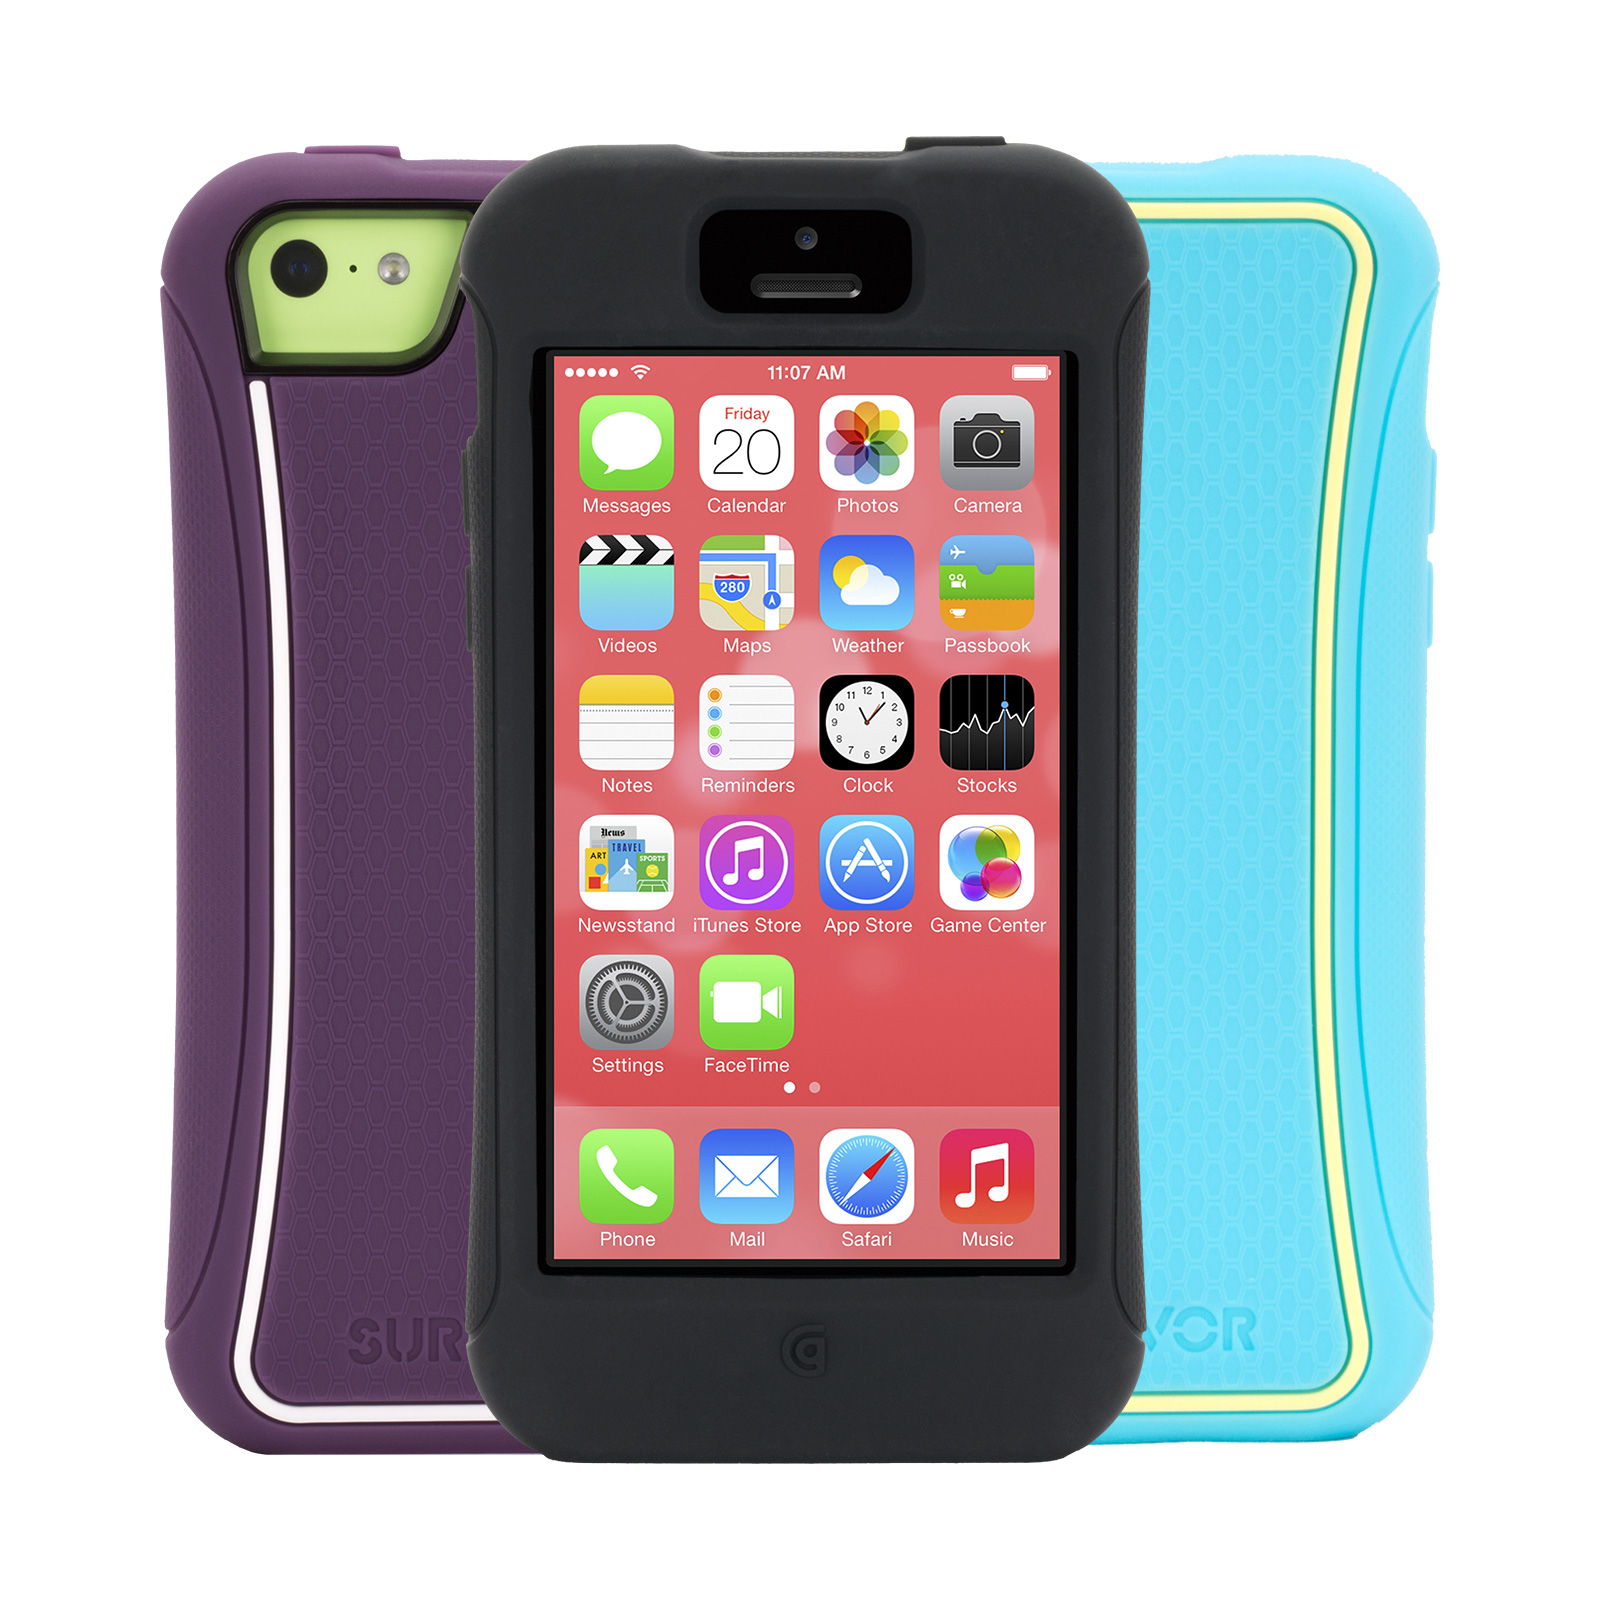 iphone 5c covers griffin survivor slim protective for iphone 5c 11092